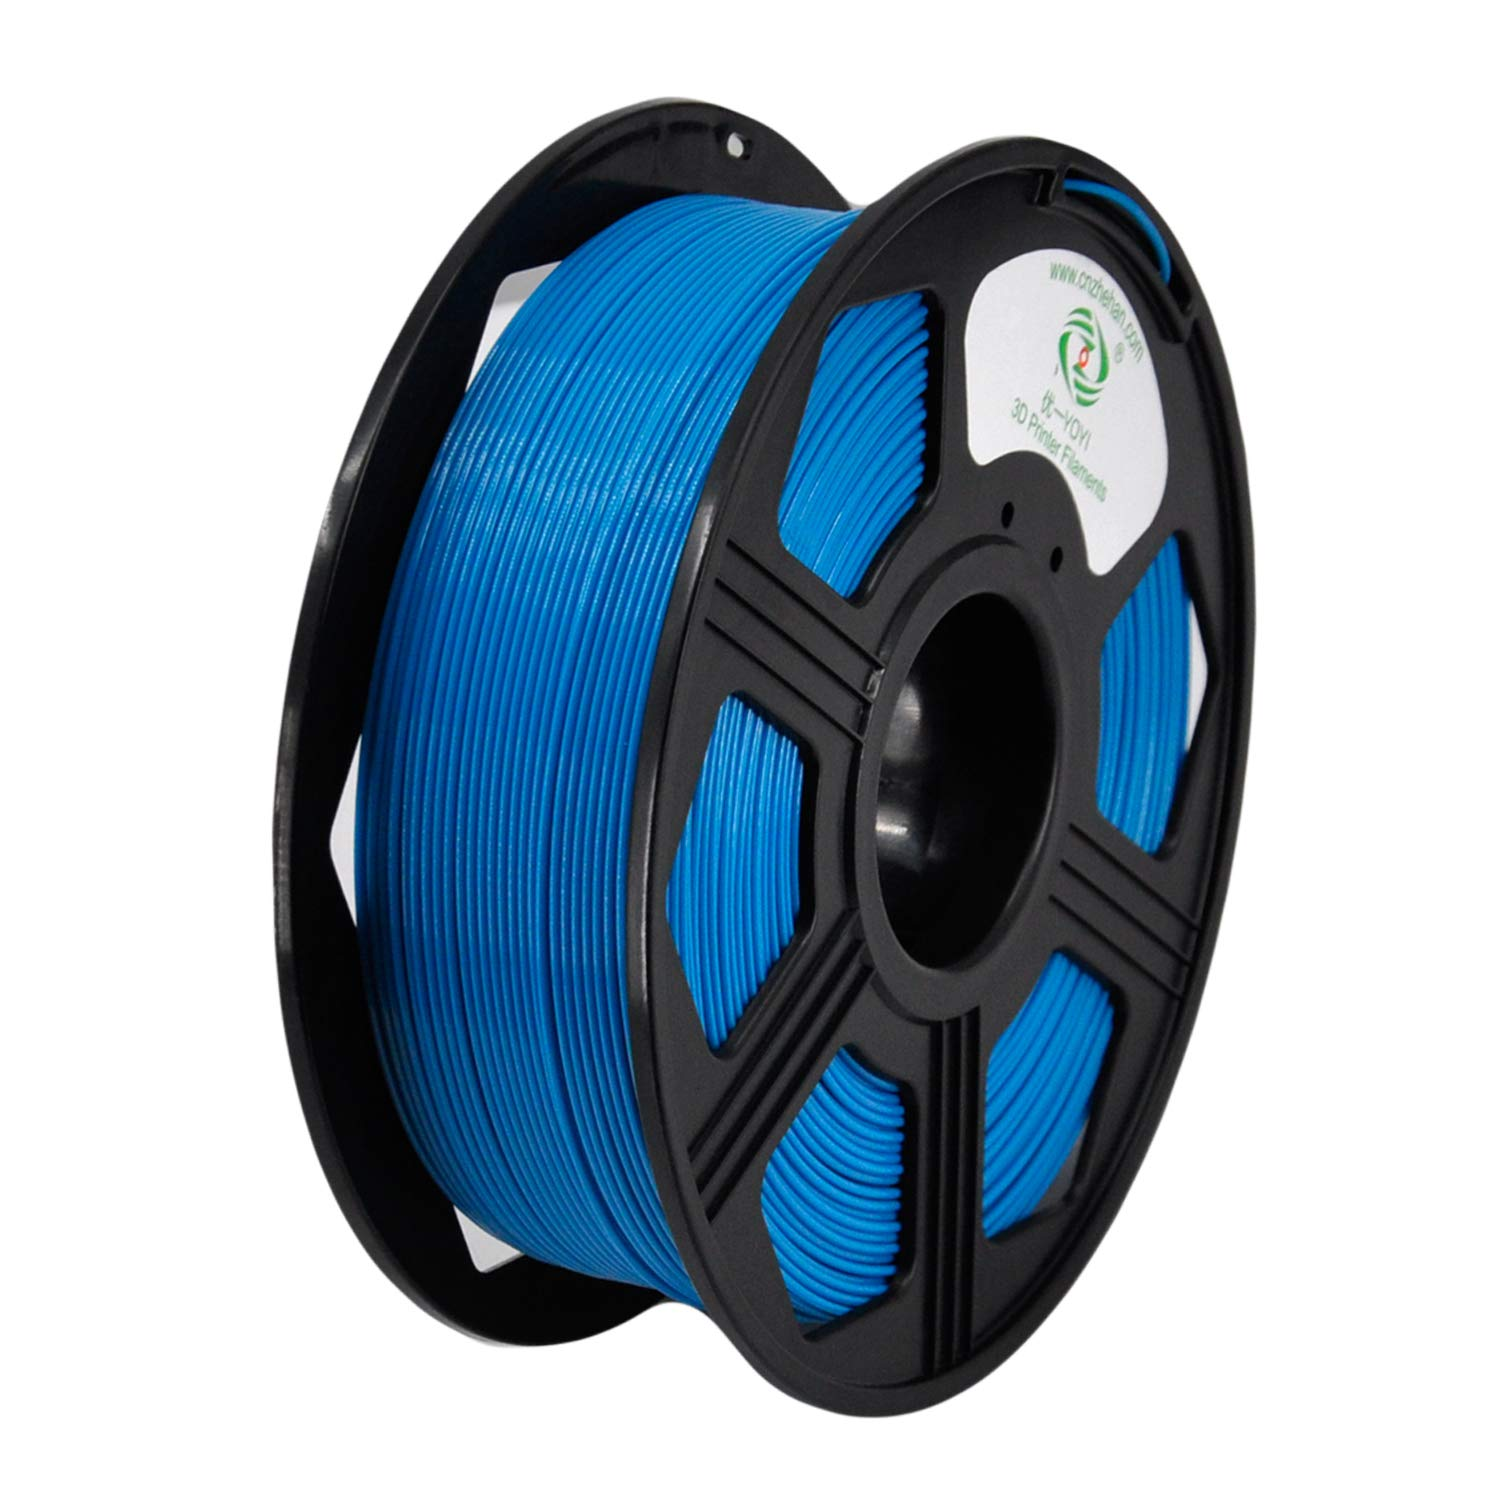 2.2 lbs YOYI PLA 3D Printer Filament 1.75mm 1KG Spool 100/% Virgin Raw Material Dimensional Accuracy +//- 0.03 mm,REACH Certificate,Eco-friendly Aqua Blue